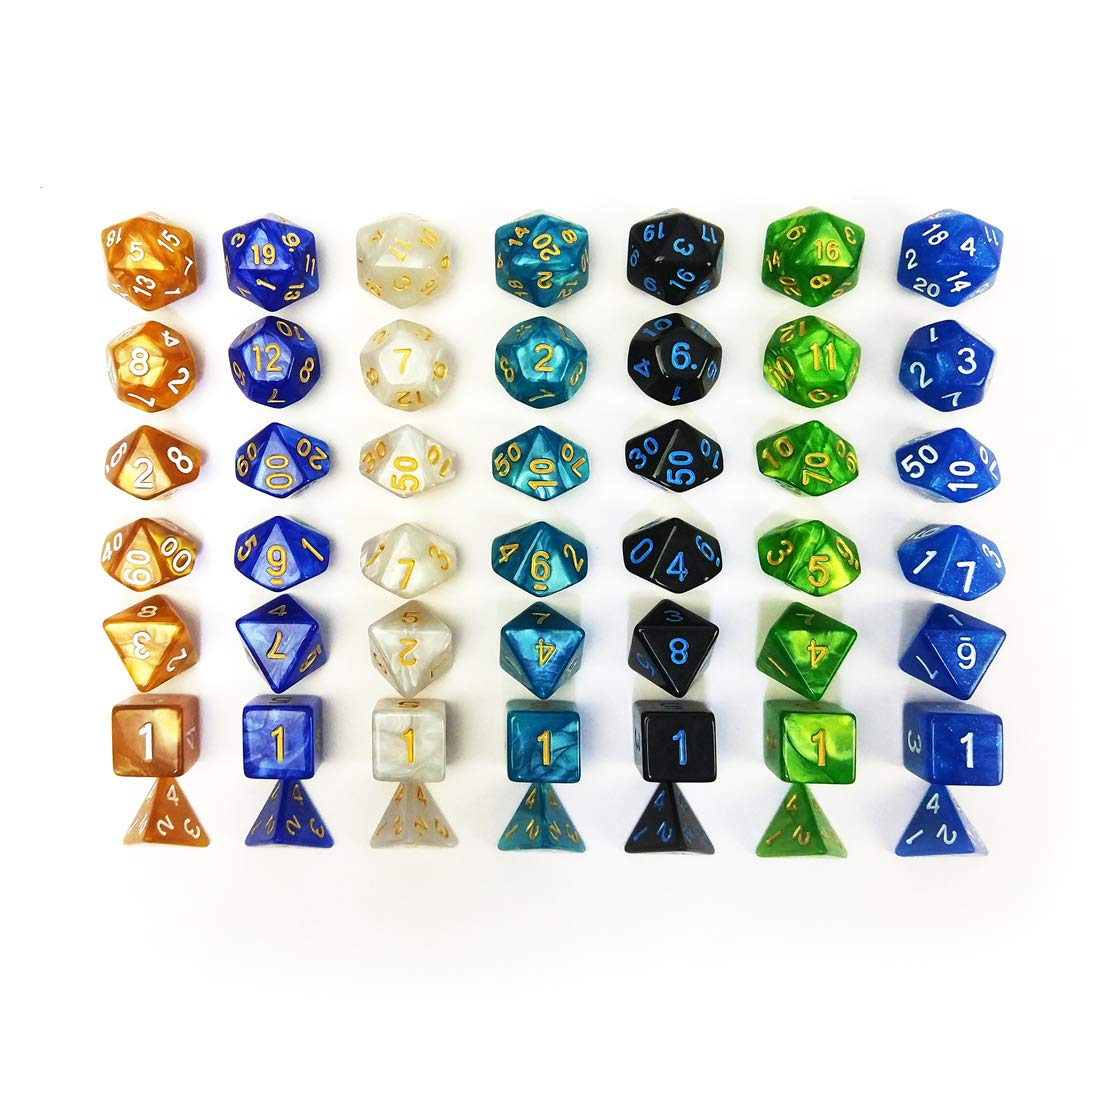 QMAY DND Dice Set, 140PCS Polyhedral Game Dice, 20 Color Double-Colors DND Dice Role Playing Dice for Dungeon and Dragons DND RPG MTG Table Games Dice D4 D8 D10 D12 D20 by QMAY (Image #8)